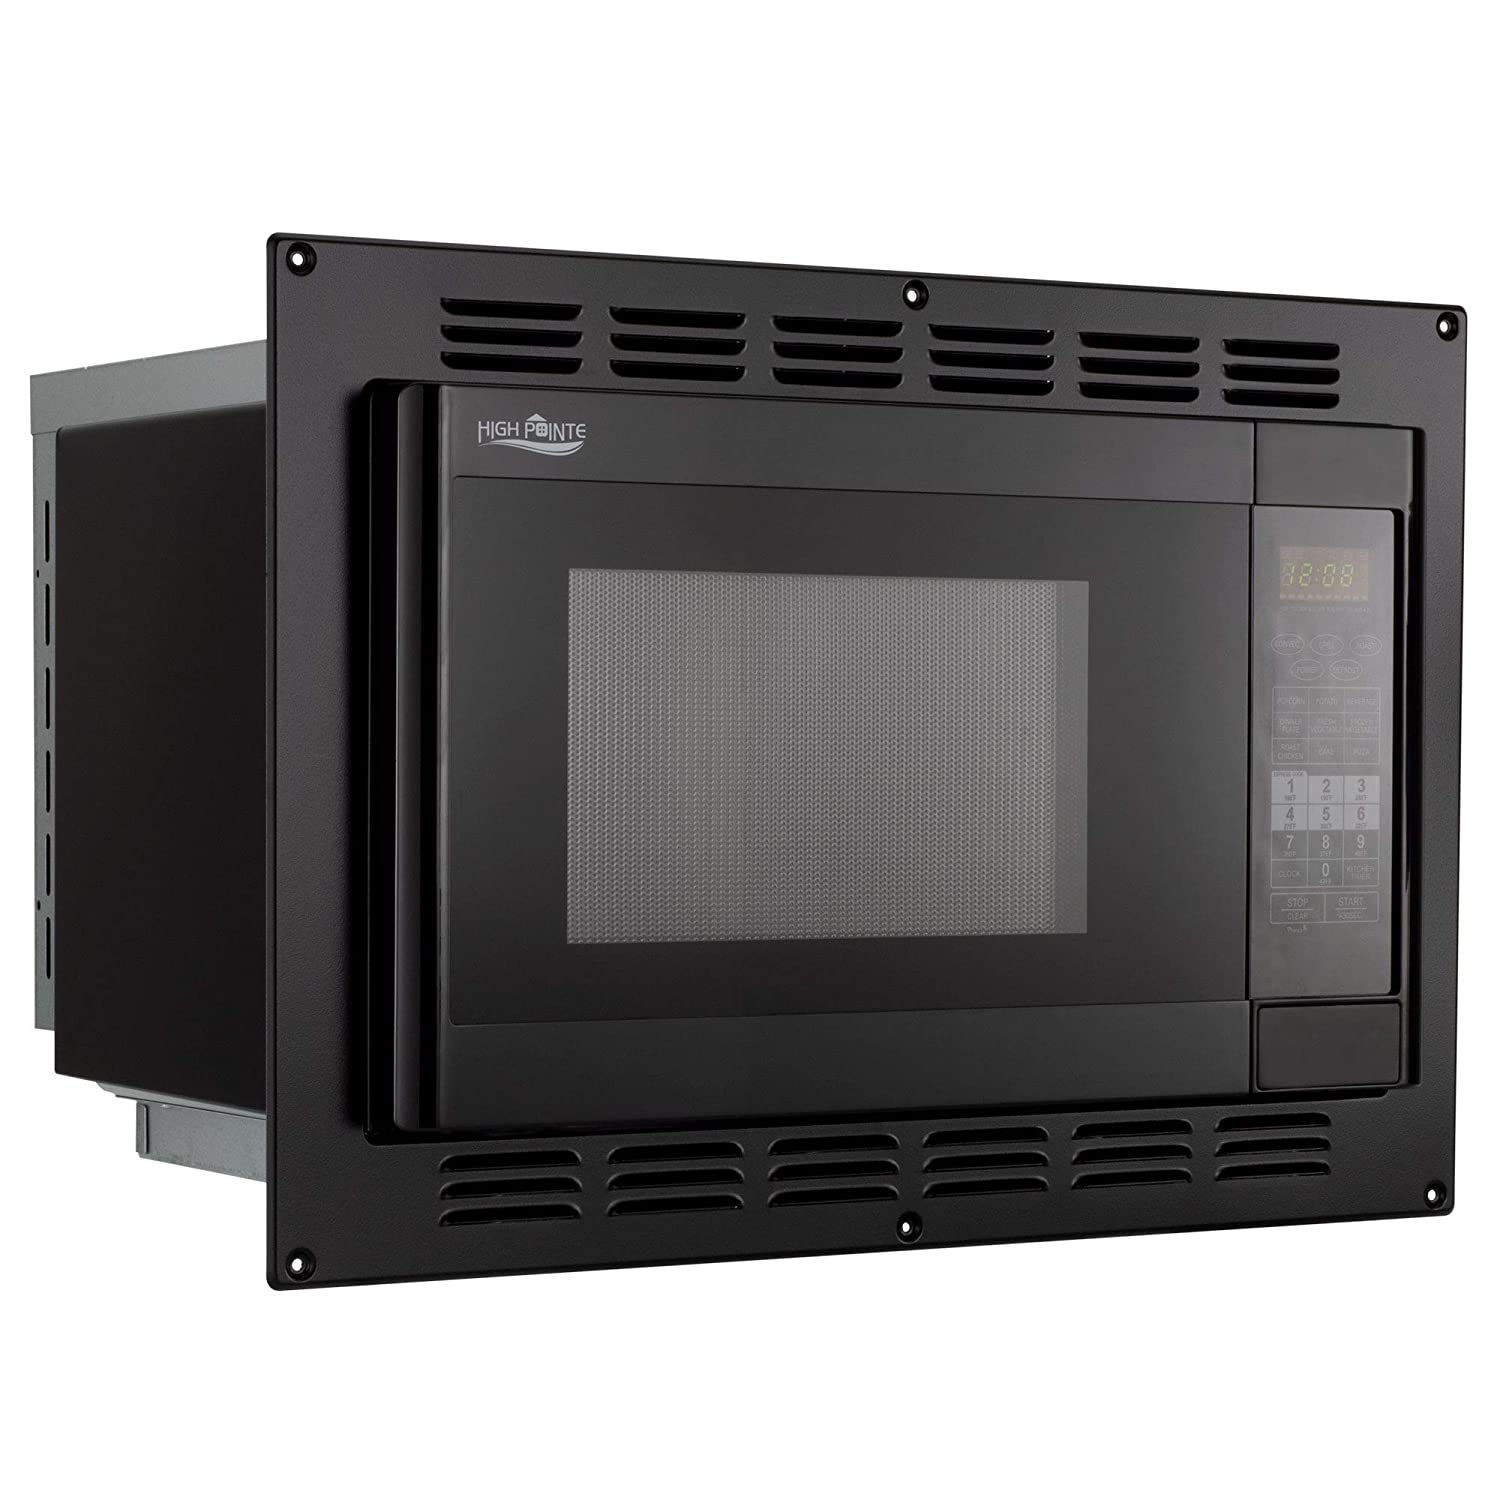 RecPro RV Convection Microwave Black 1.1 Cu. ft | 120V | Microwave | Appliances